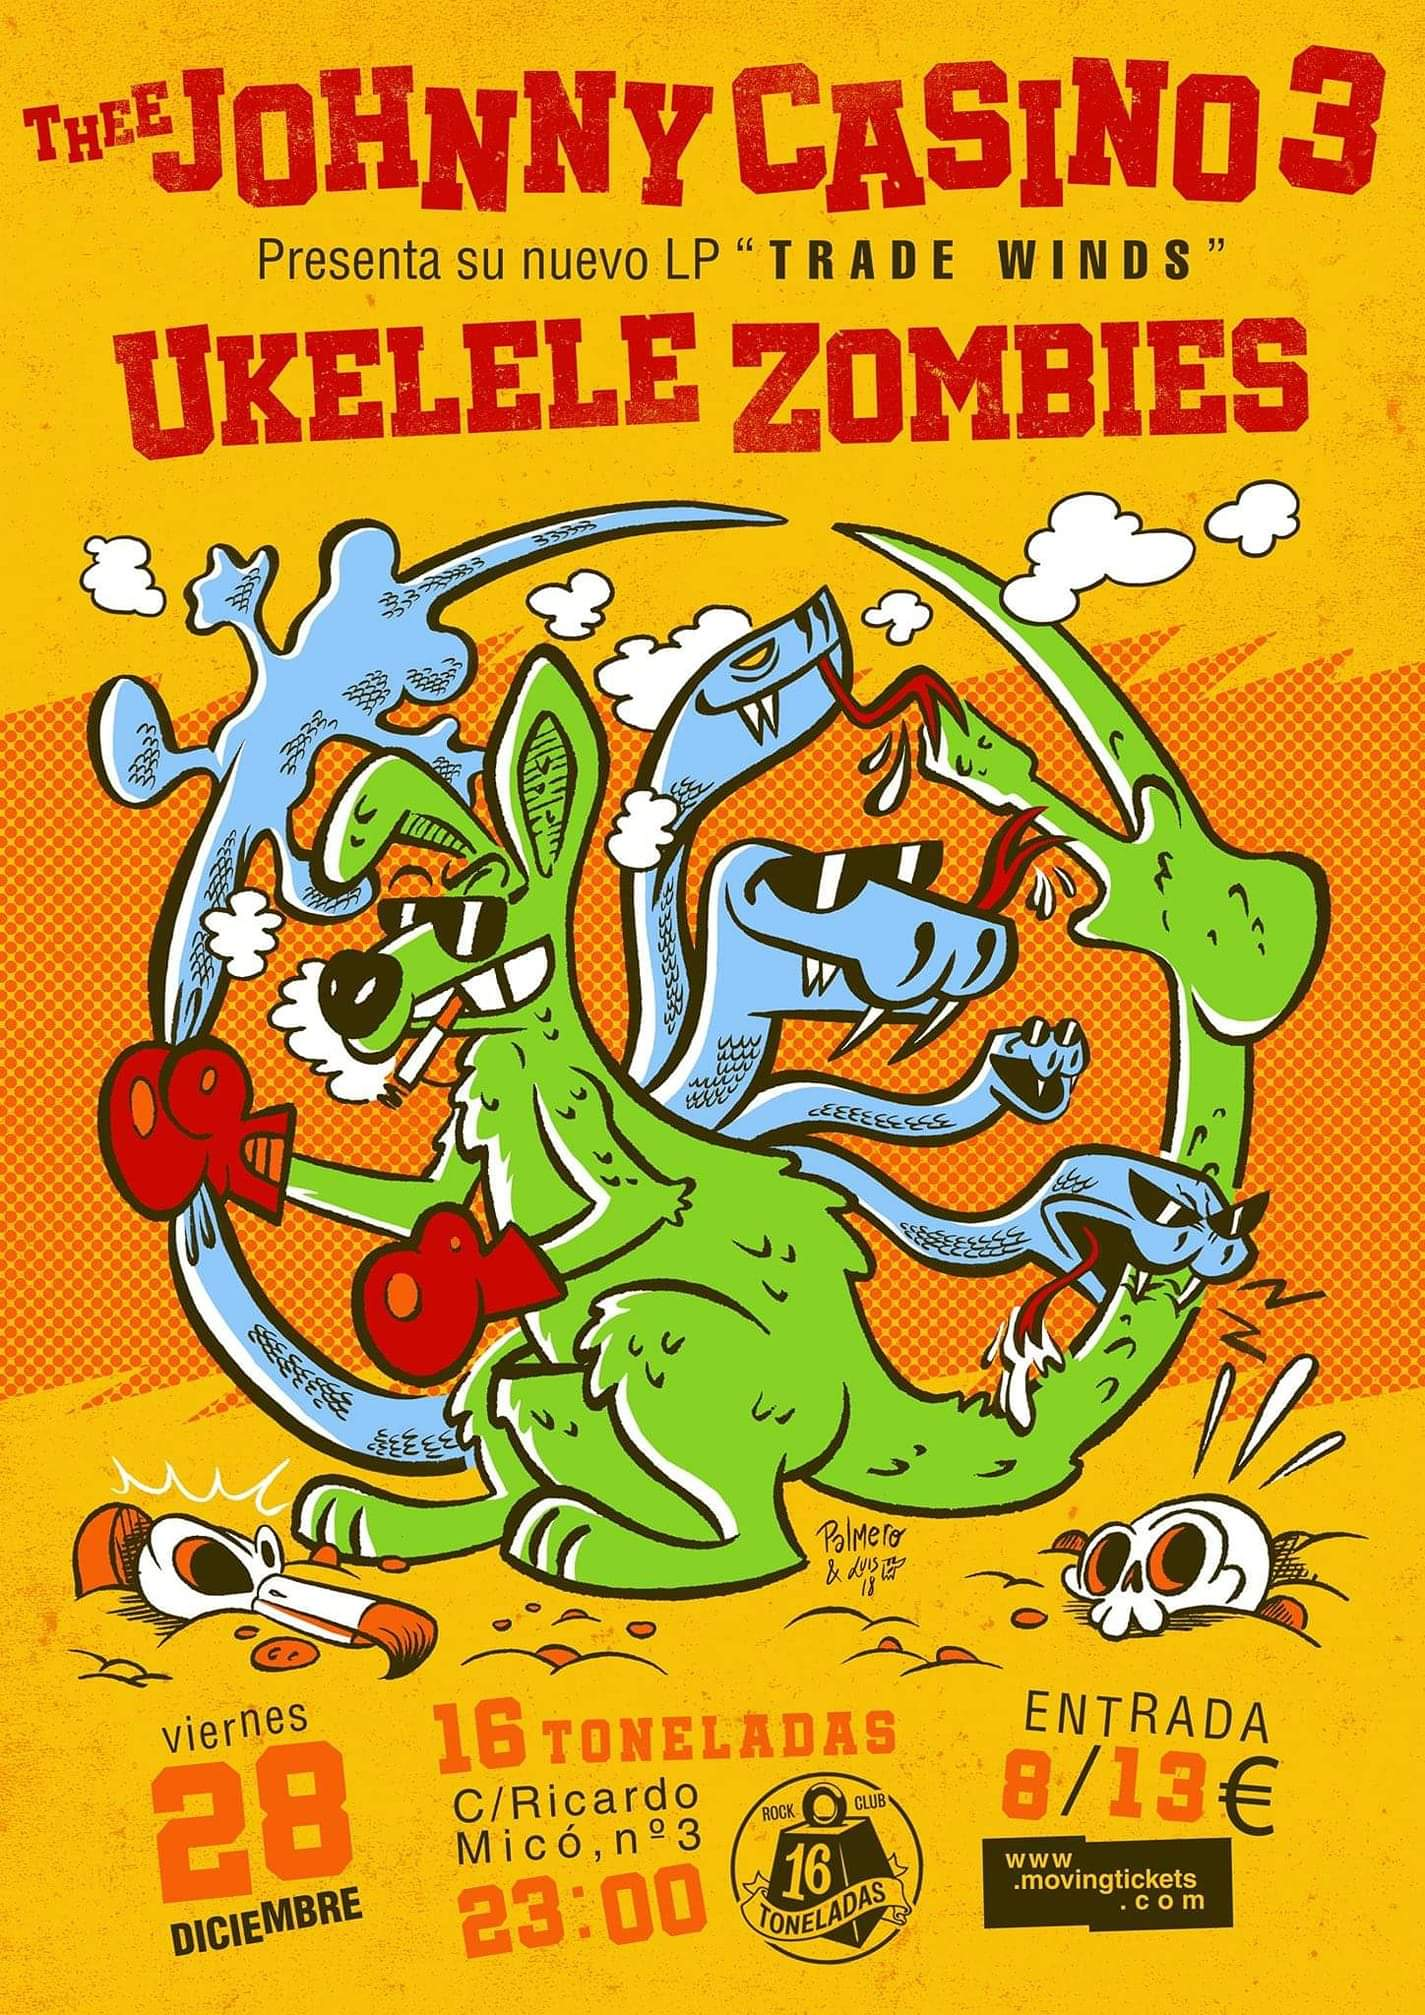 UKELELE ZOMBIES- JOHNNY CASINO 28 DICIEMBRE 16 TONELADAS  Fb_im162